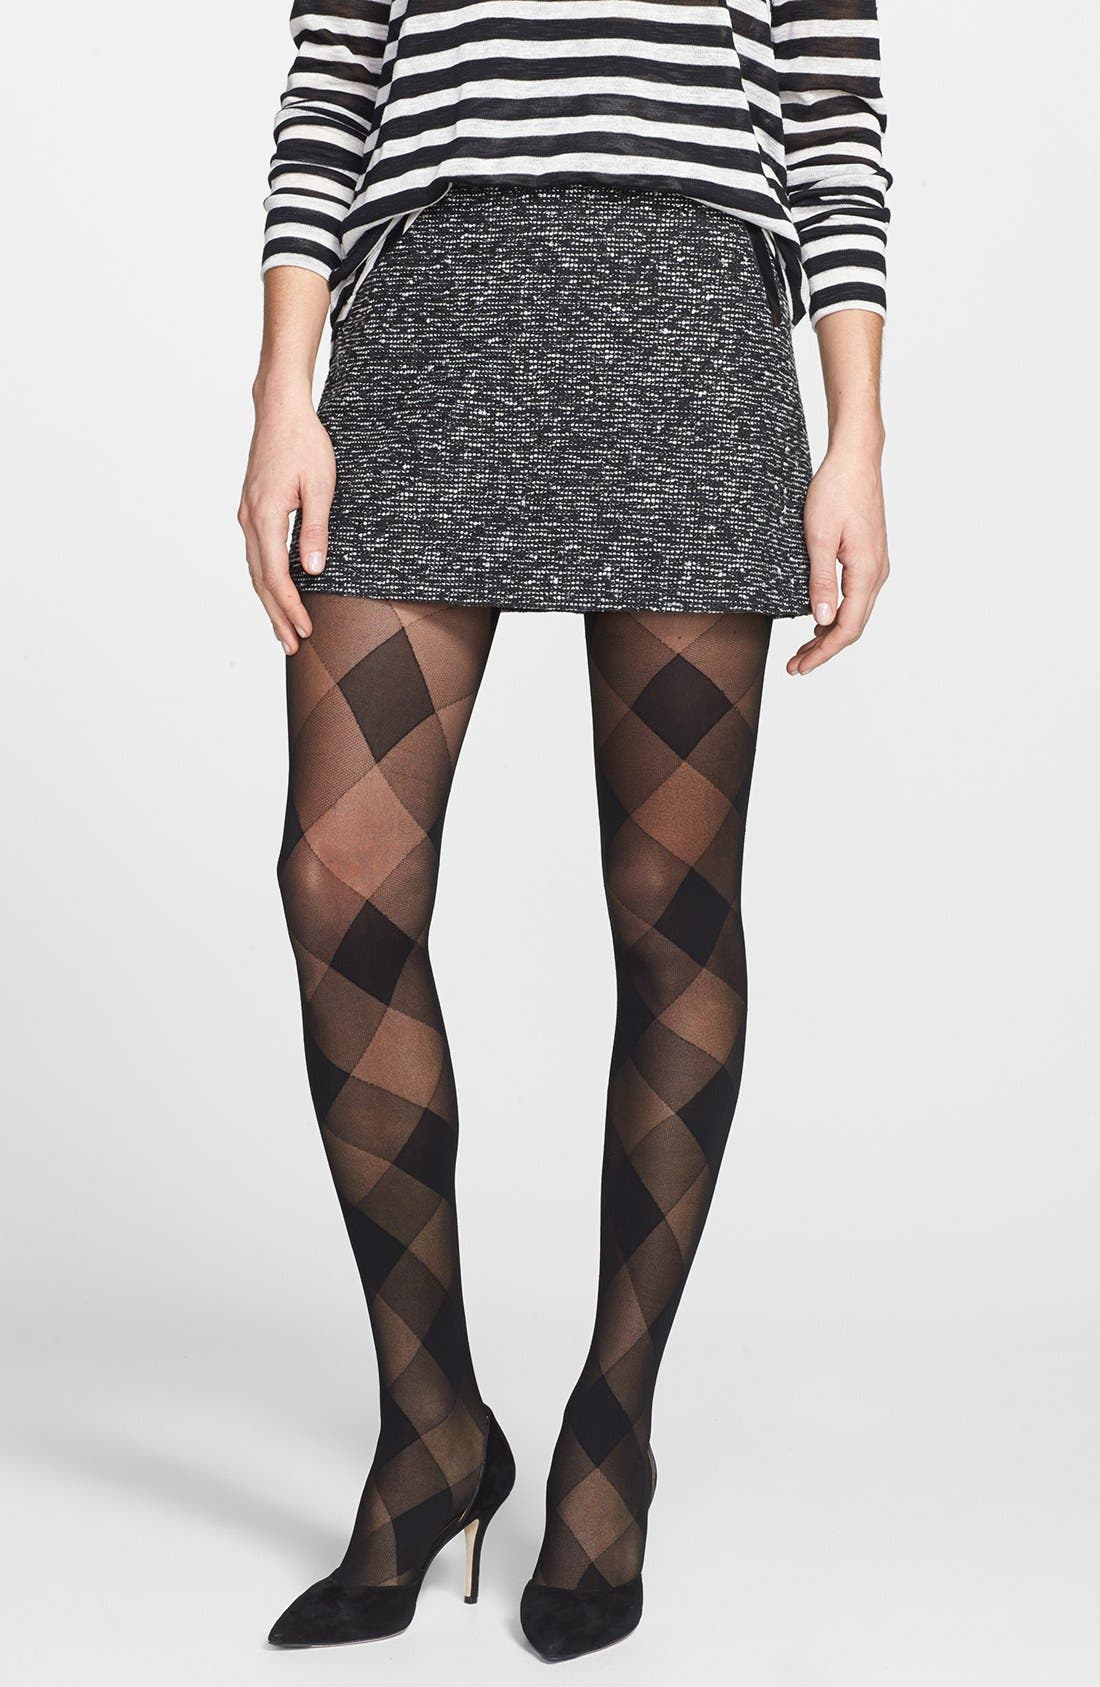 Main Image - Nordstrom 'Perfect Plaid' Tights (2 for $24)